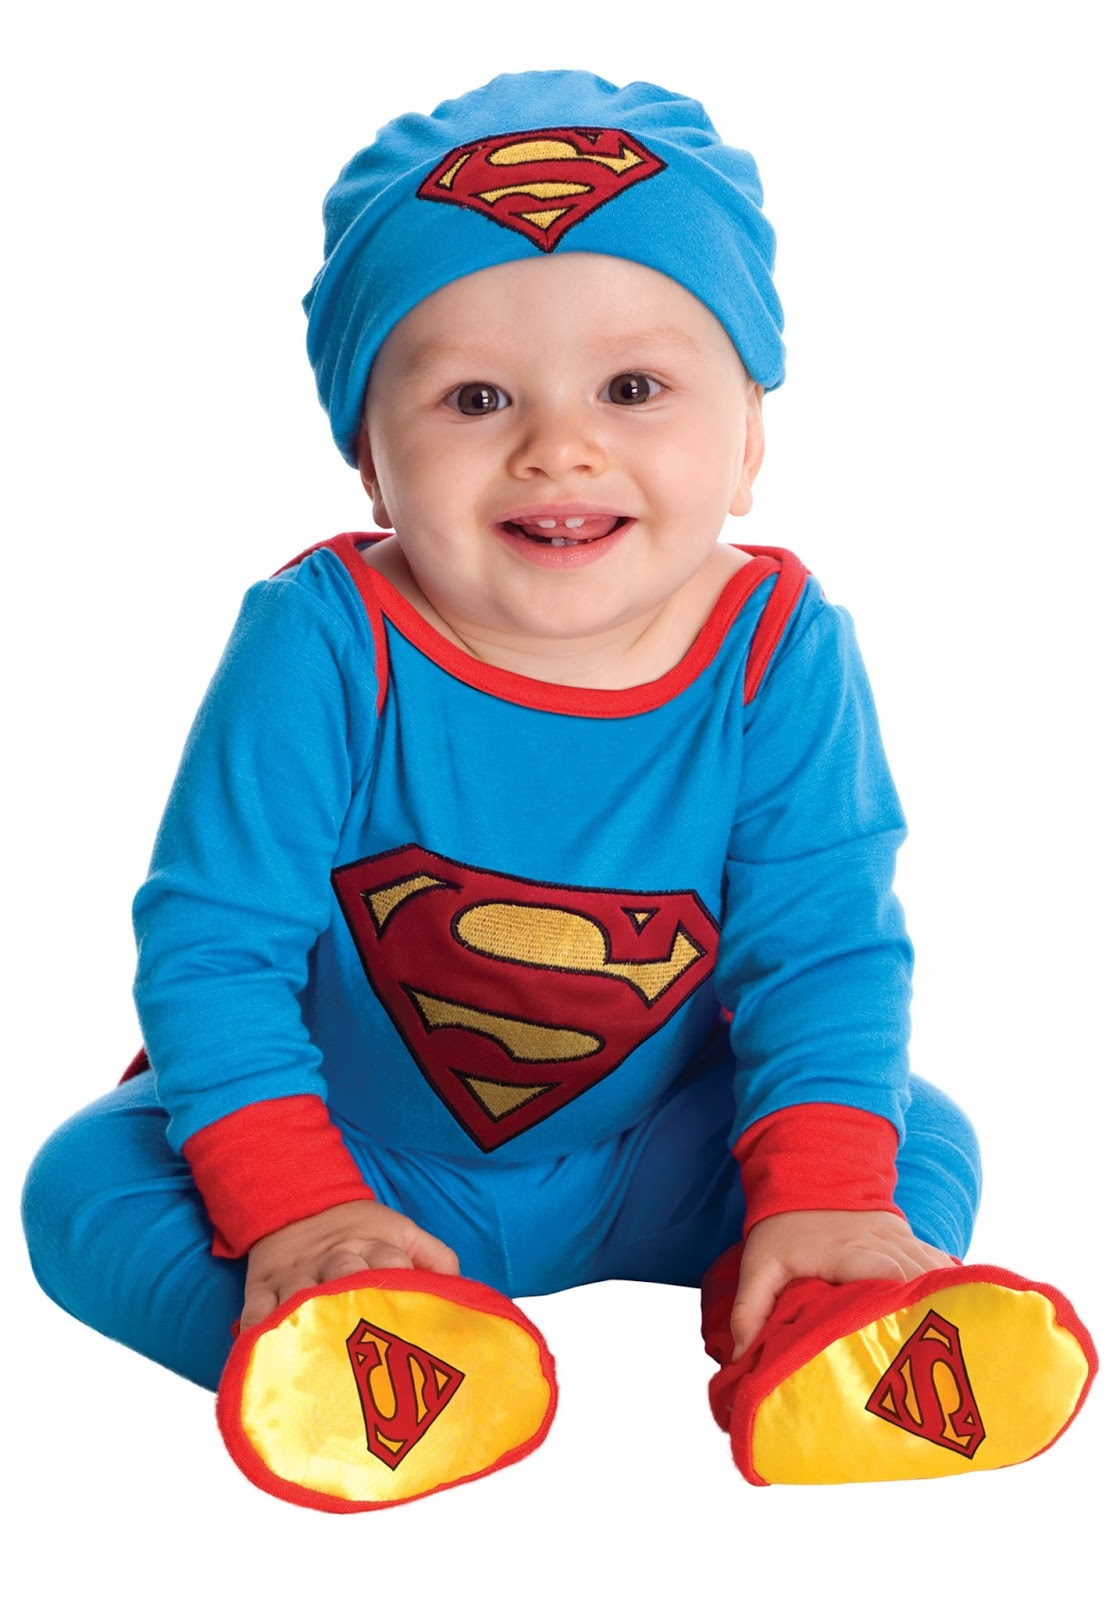 Superman baby in superman costume